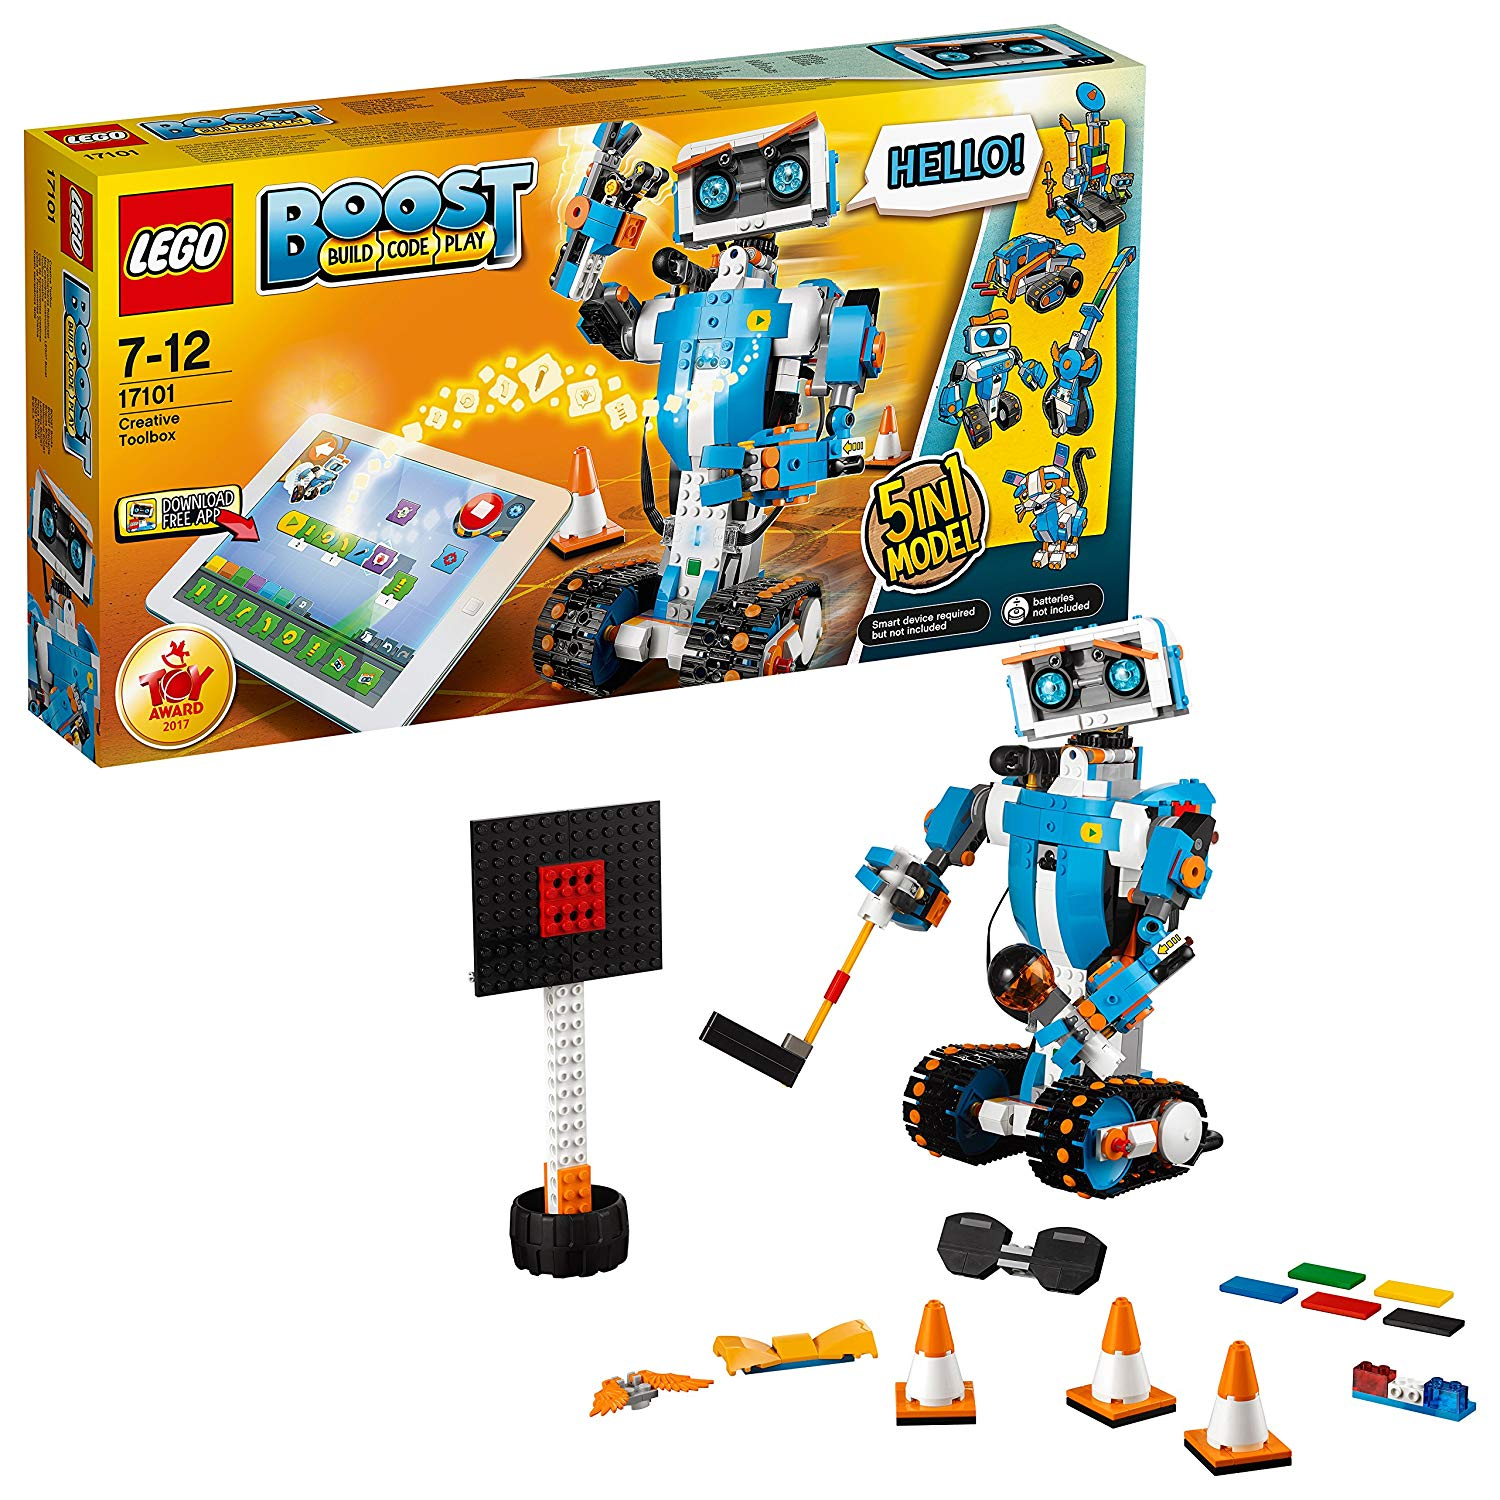 Boost Creative Toolbox Robot Building Kit